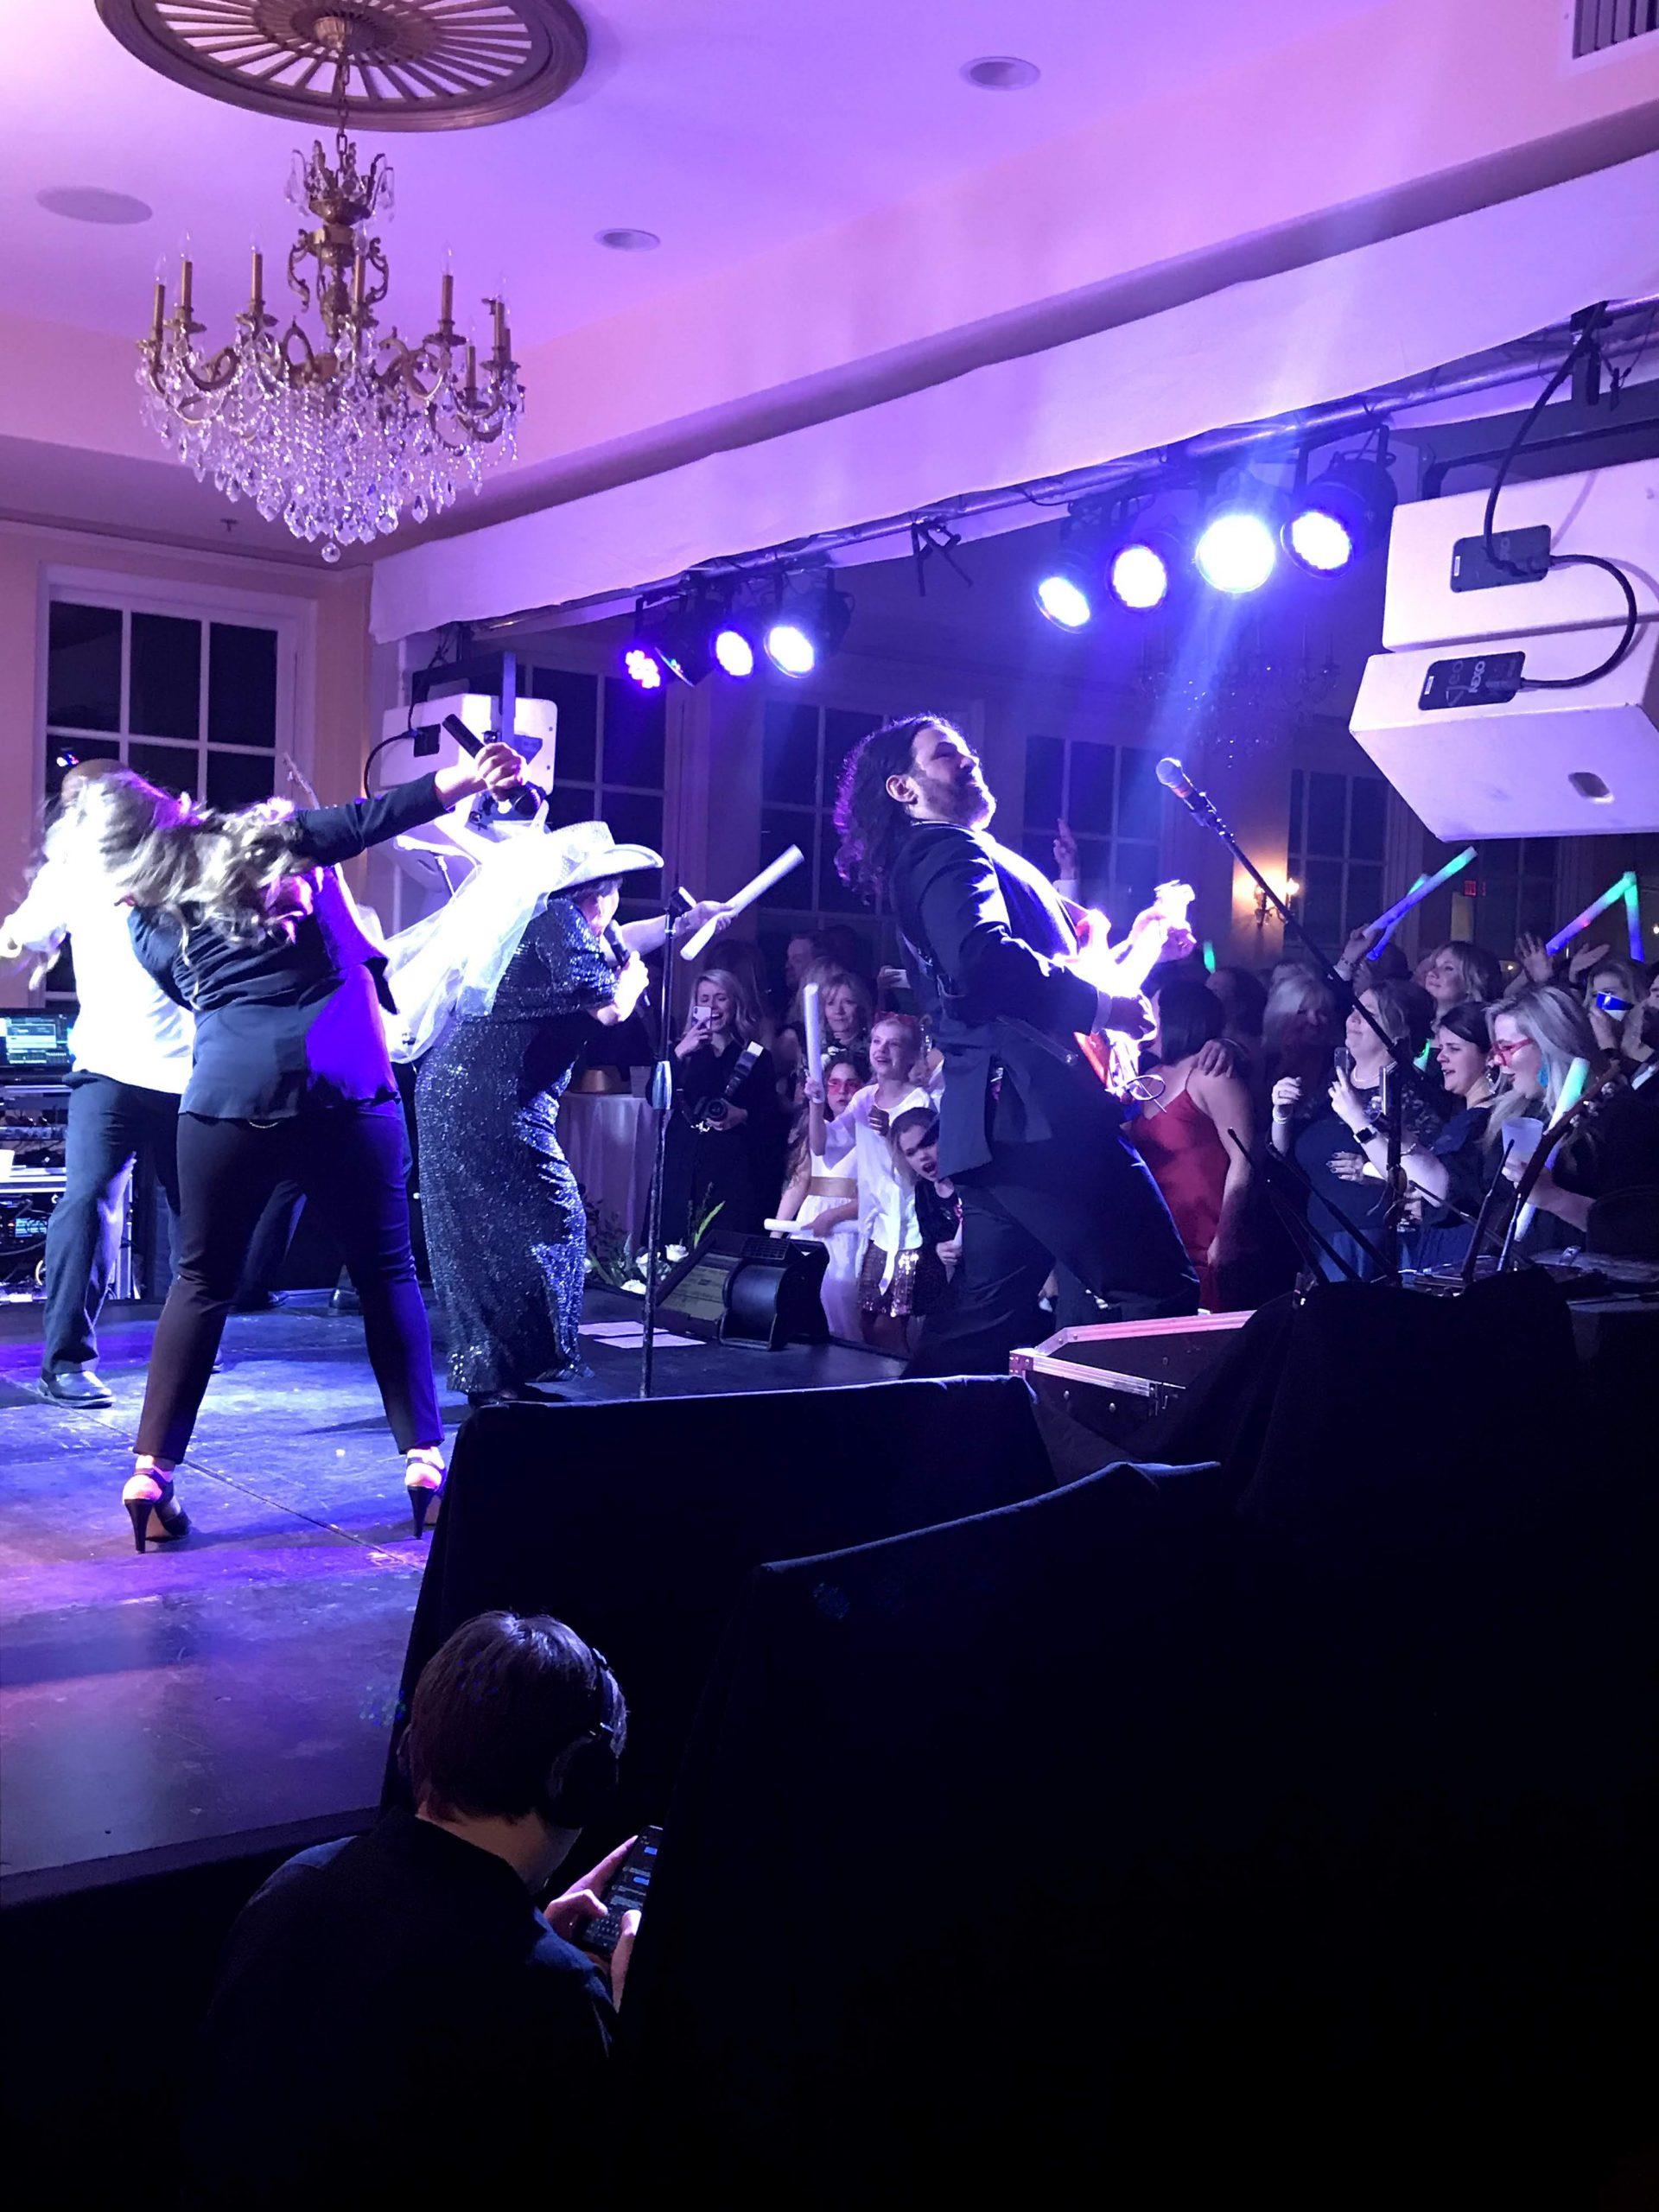 A high energy band performs on a stage prepared in the Bullock Ballroom.